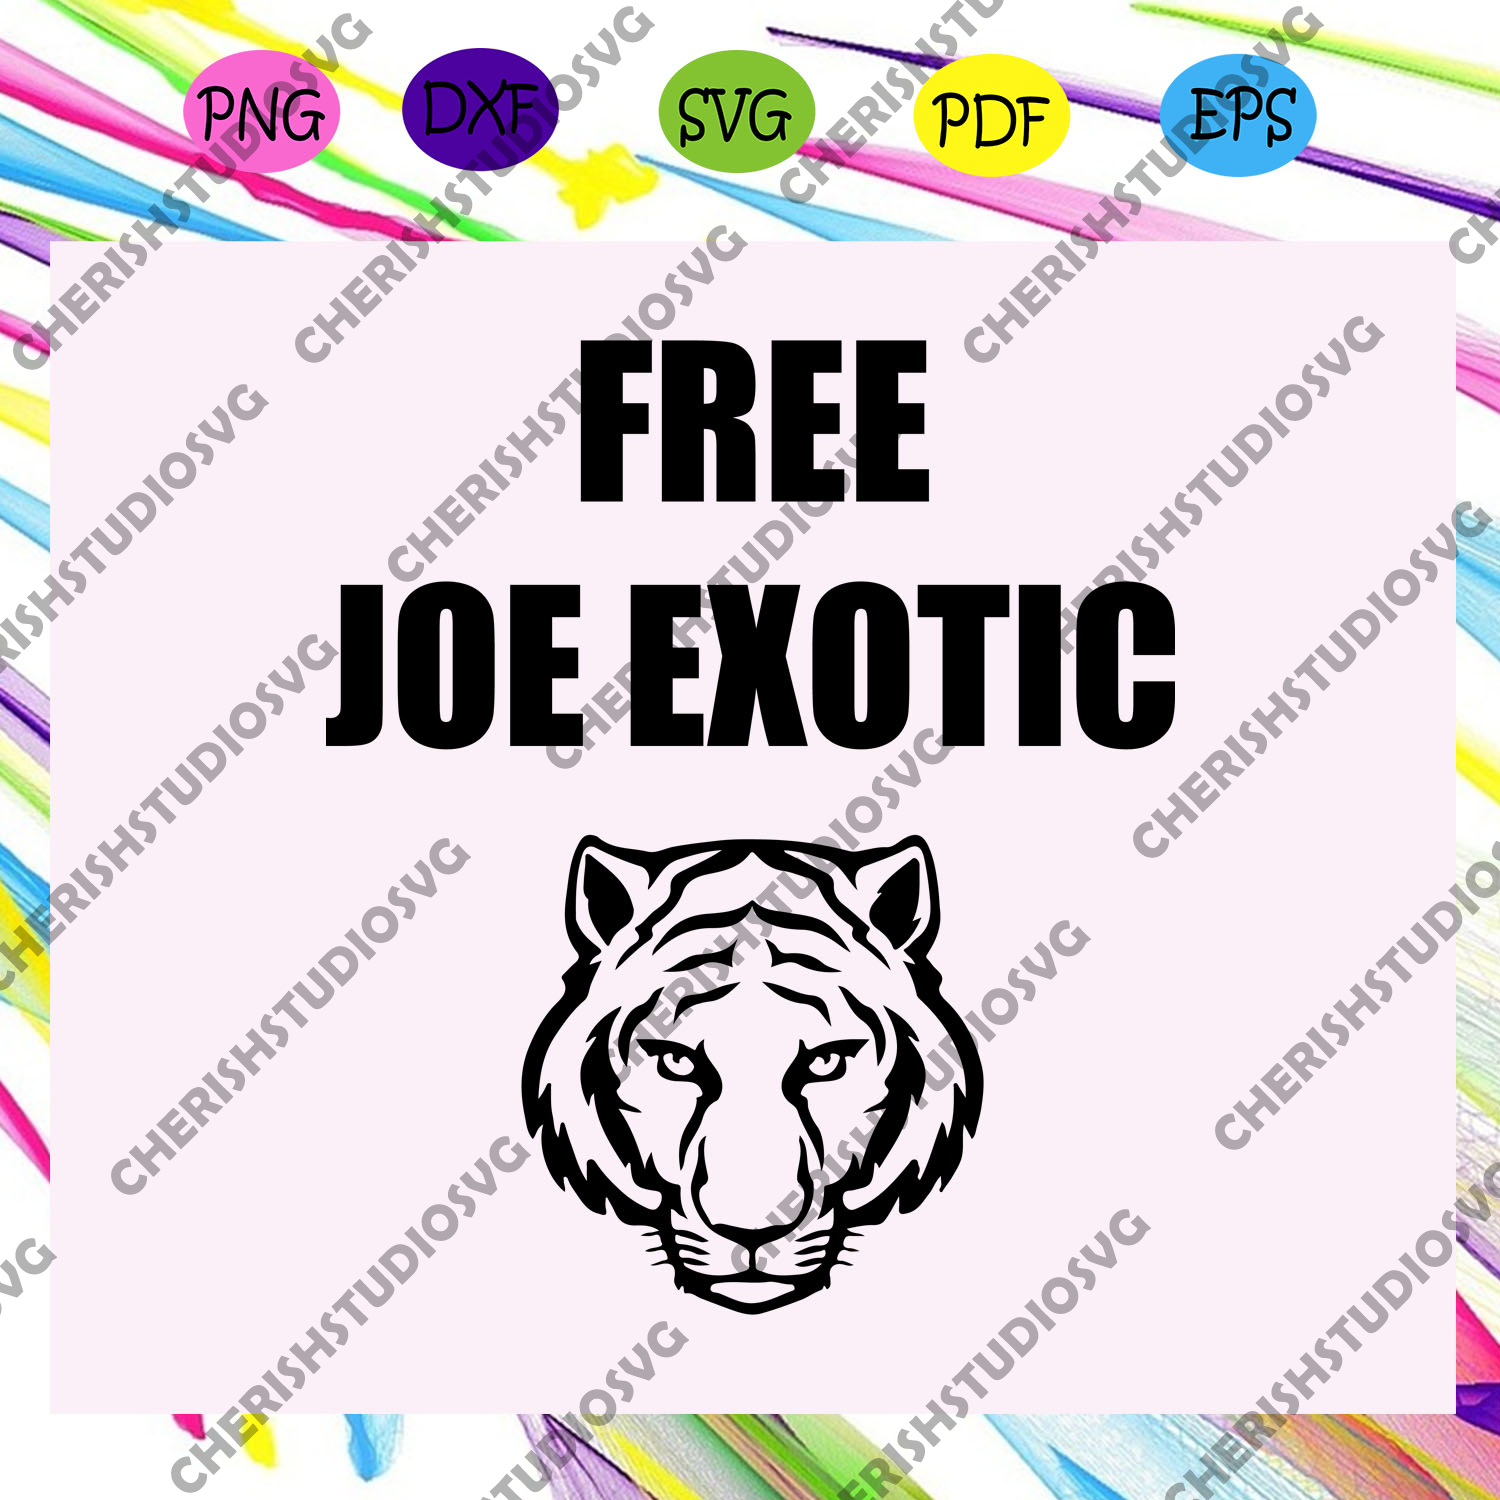 Free Joe Exotic, Joe Exotic for President svg, Joe Exotic For Silhouette, Files For Cricut, SVG, DXF, EPS, PNG Instant Download